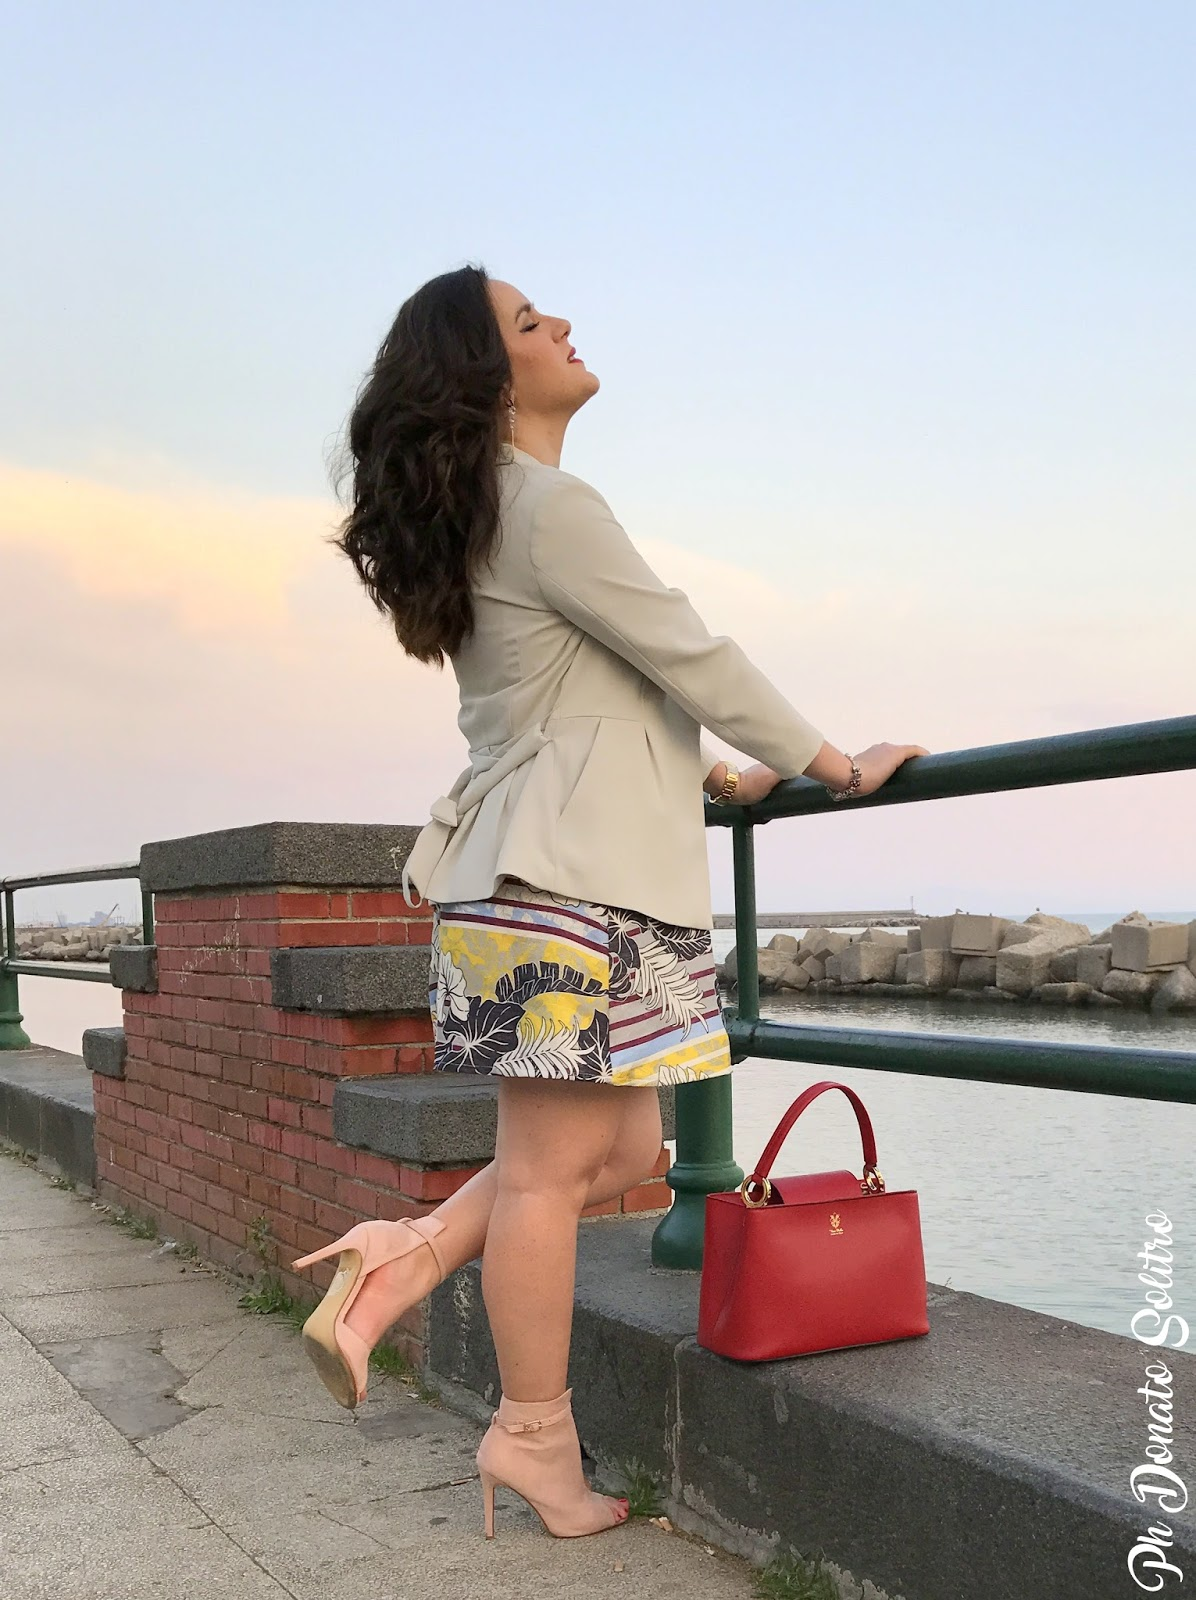 MARZIA AMARANTO FASHION BEAUTY TRAVEL BLOGGER